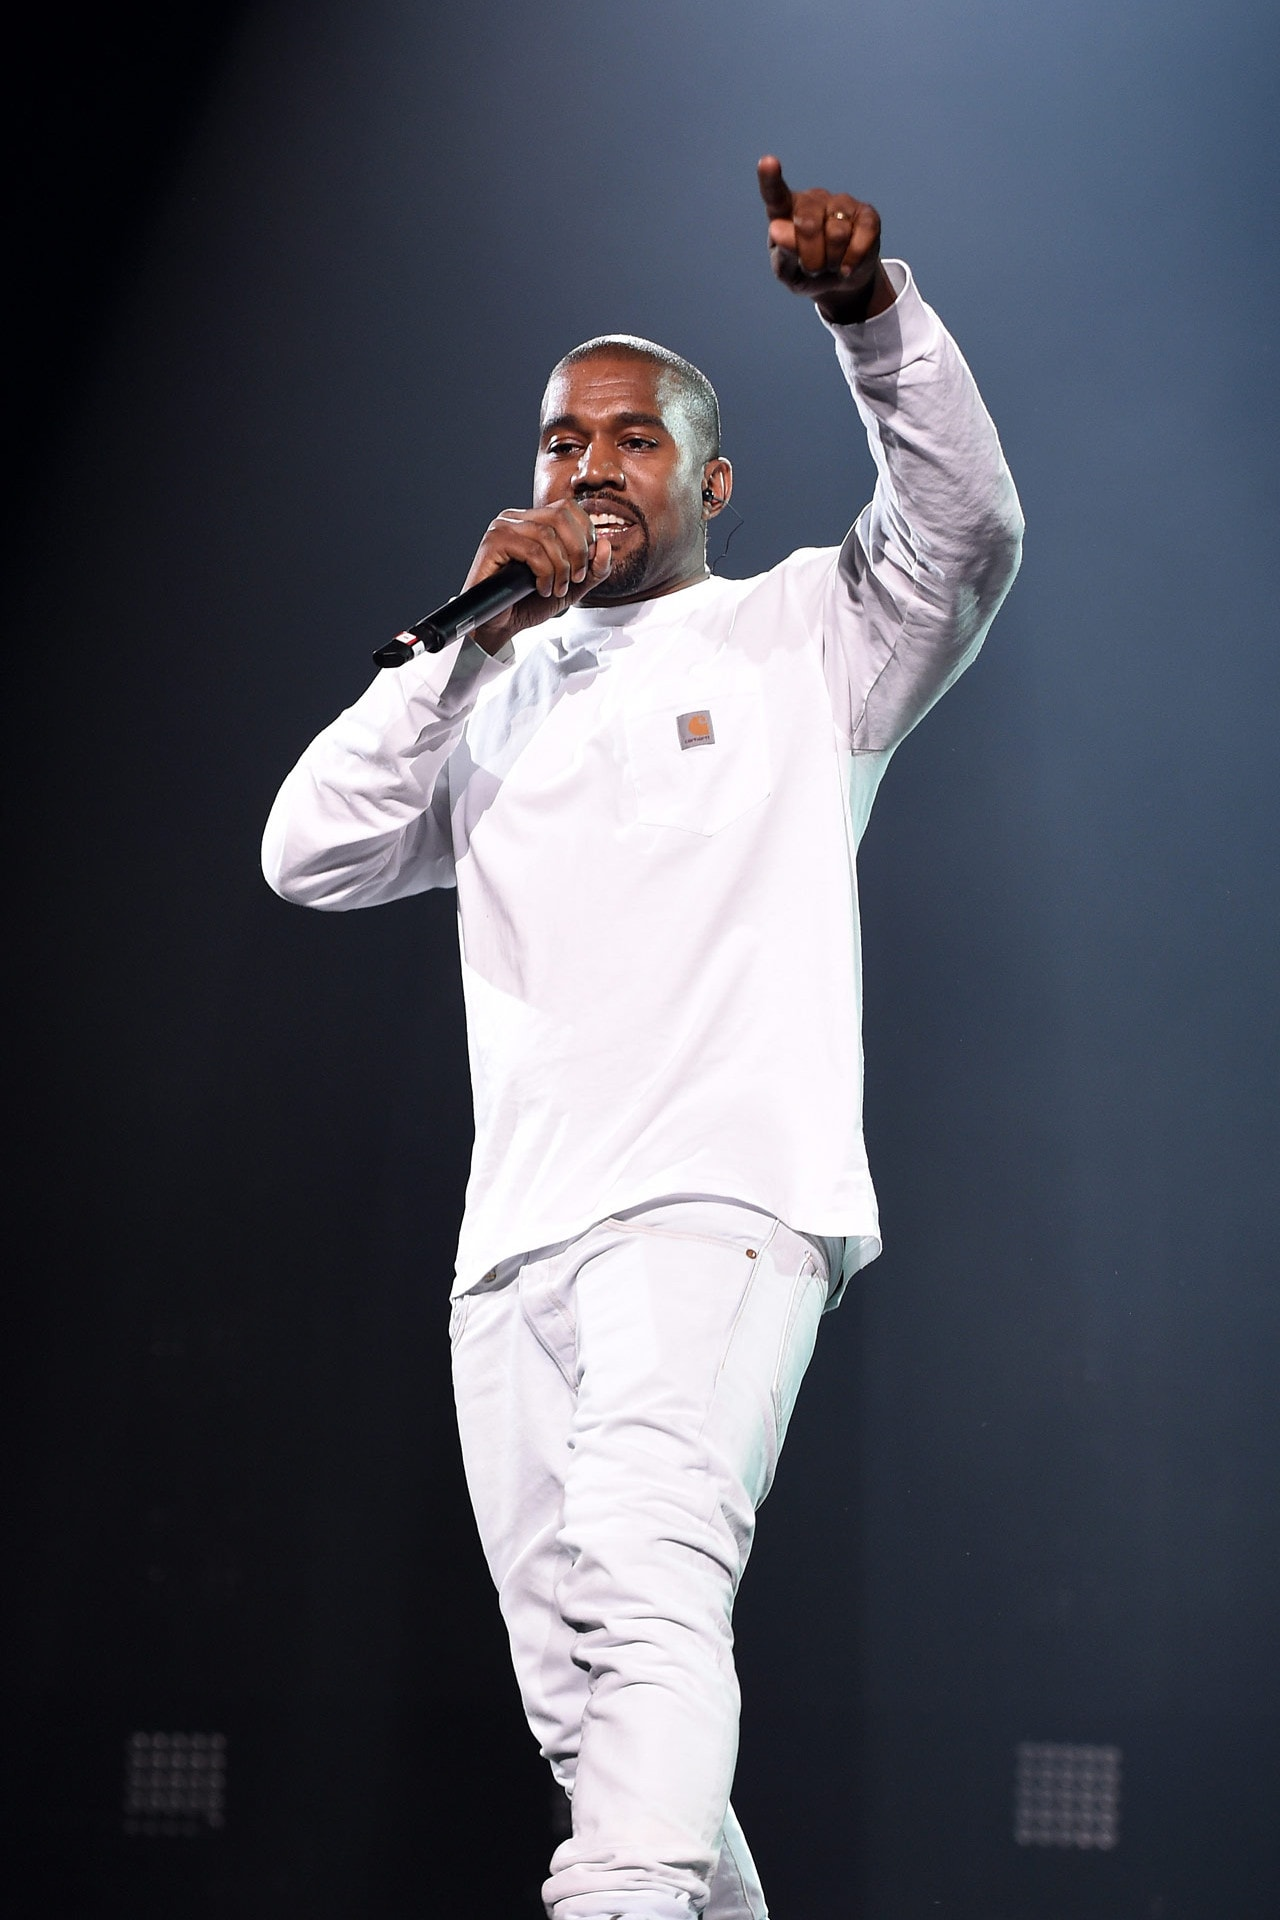 Kanye West makes his return to social media